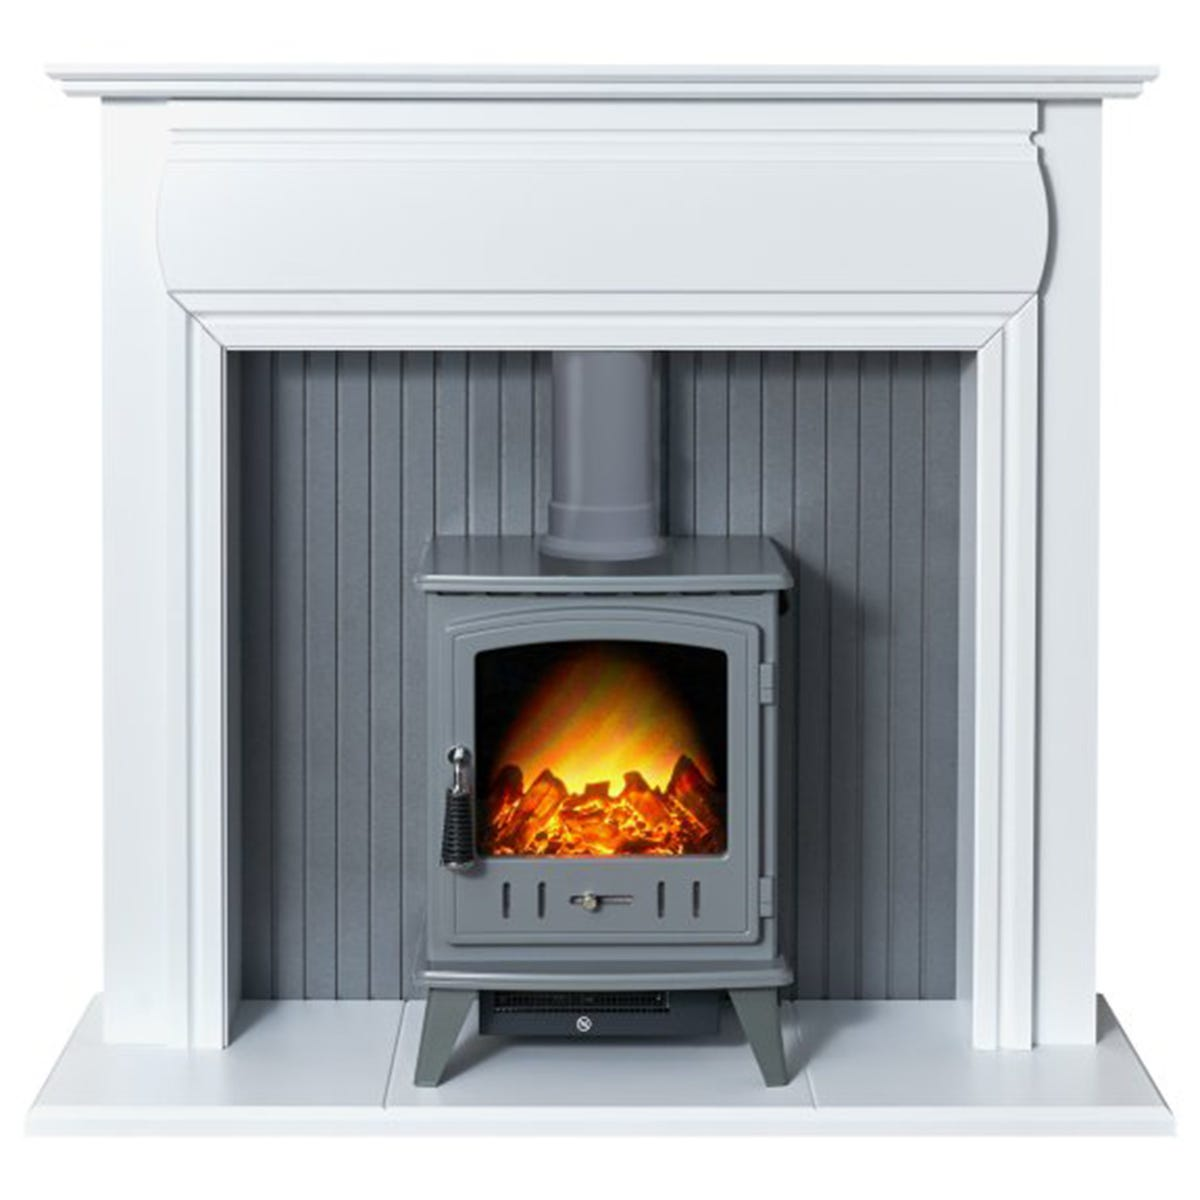 Adam Florence Stove Fireplace in Pure White with Aviemore Electric Stove in Grey Enamel 48 Inch